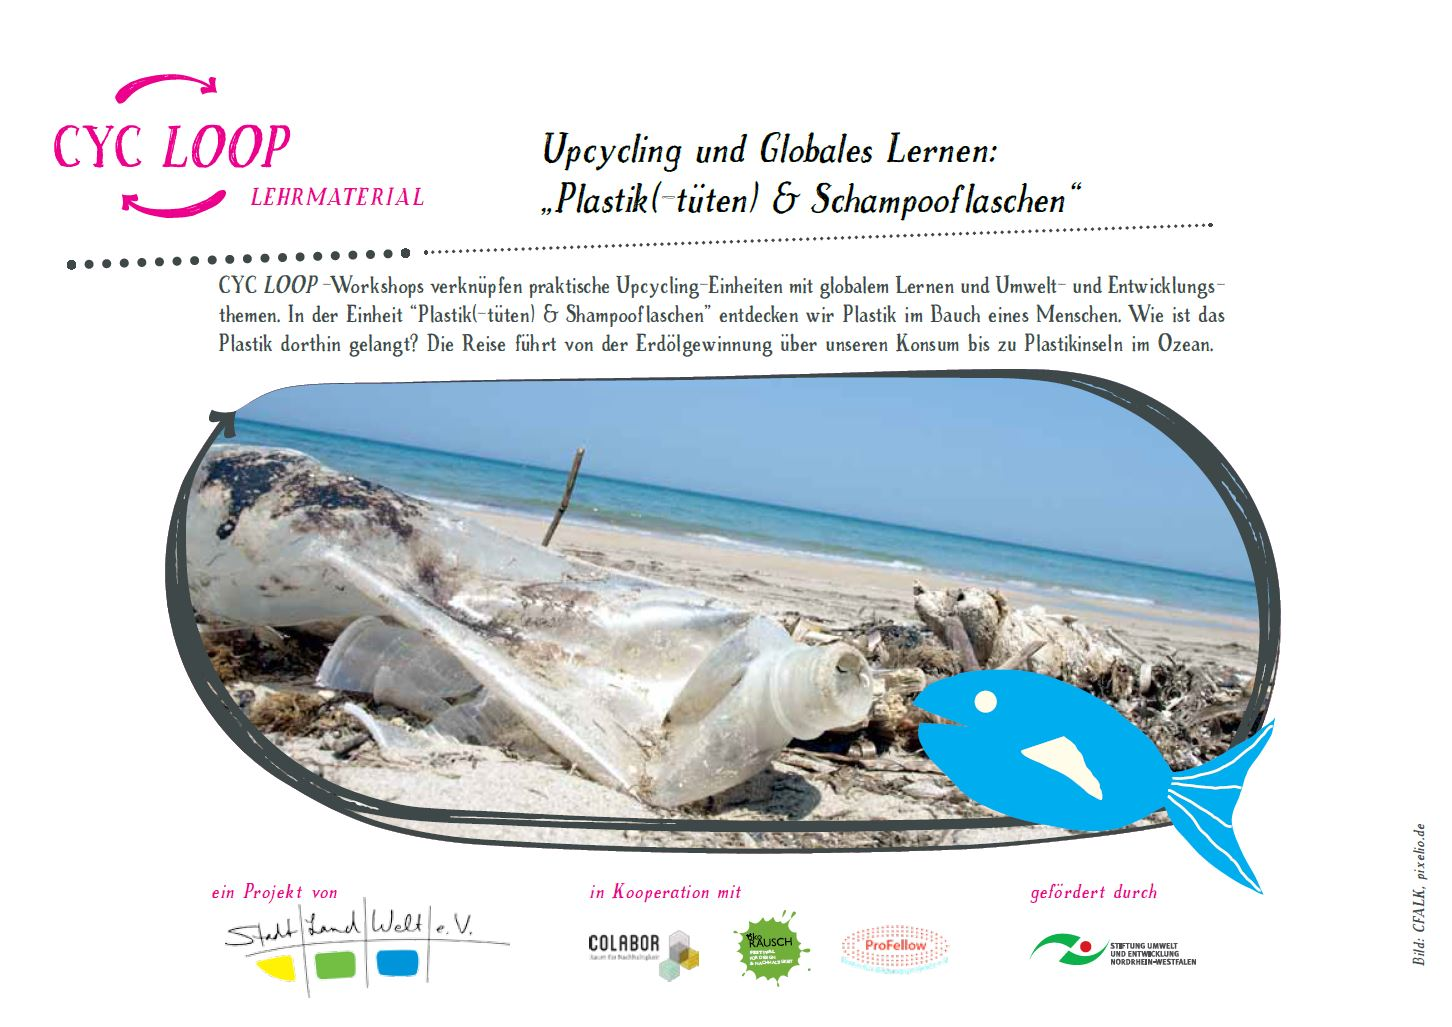 Preview image for LOM object   Plastik(-tüten) & Shampooflaschen: Upcycling und Globales Lernen